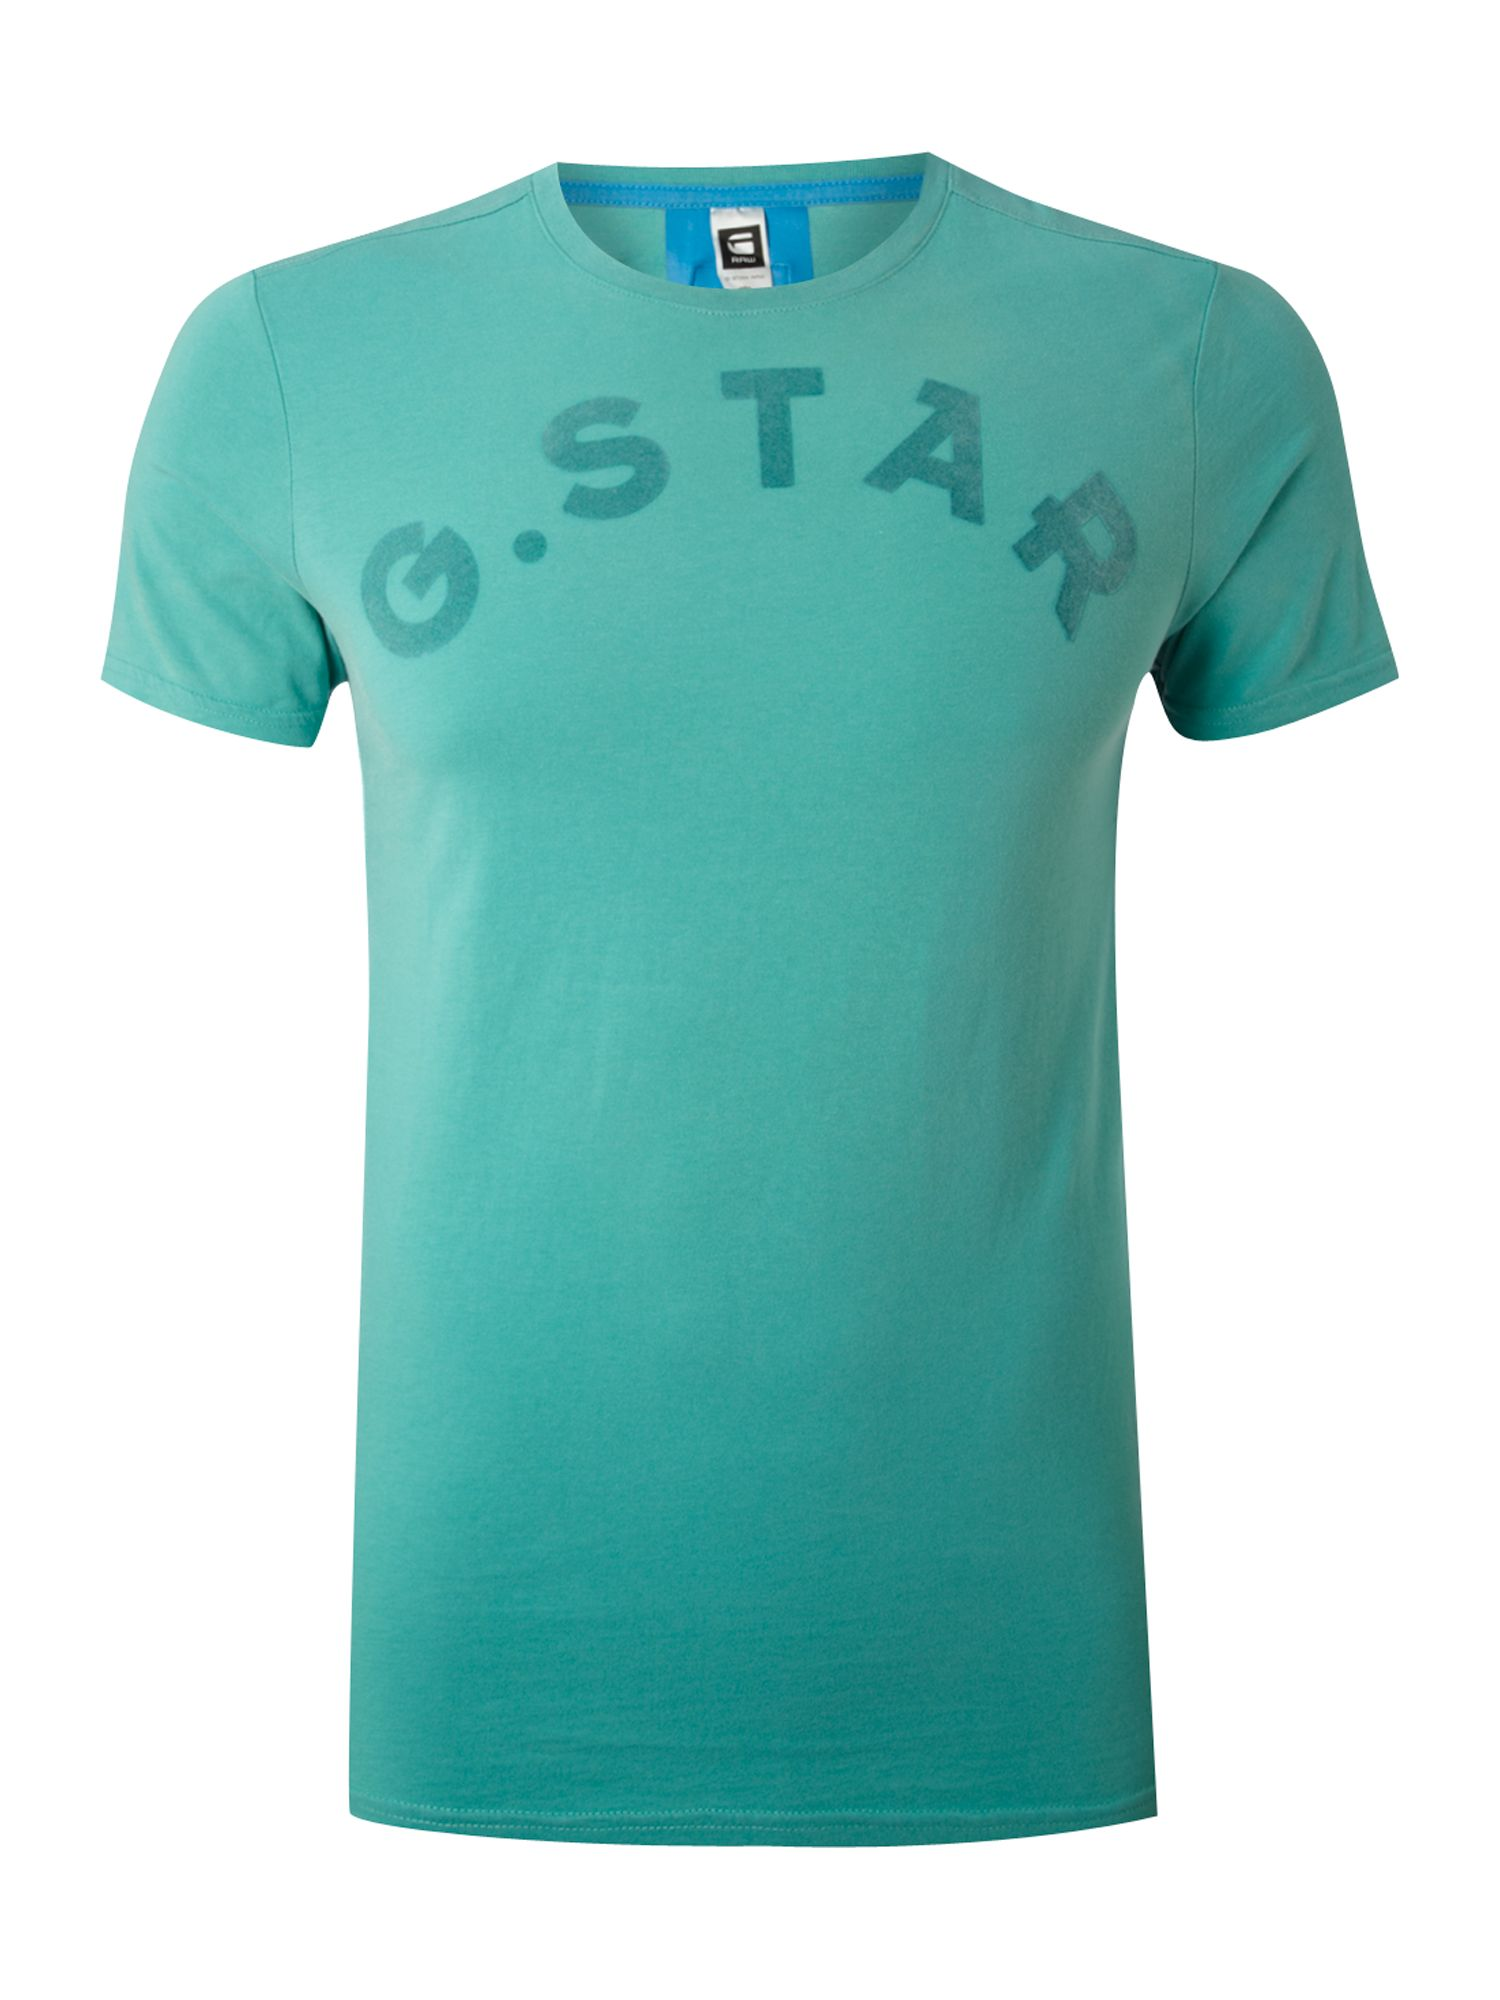 G-Star Mens G-Star Magnum short sleeve t-shirt, product image